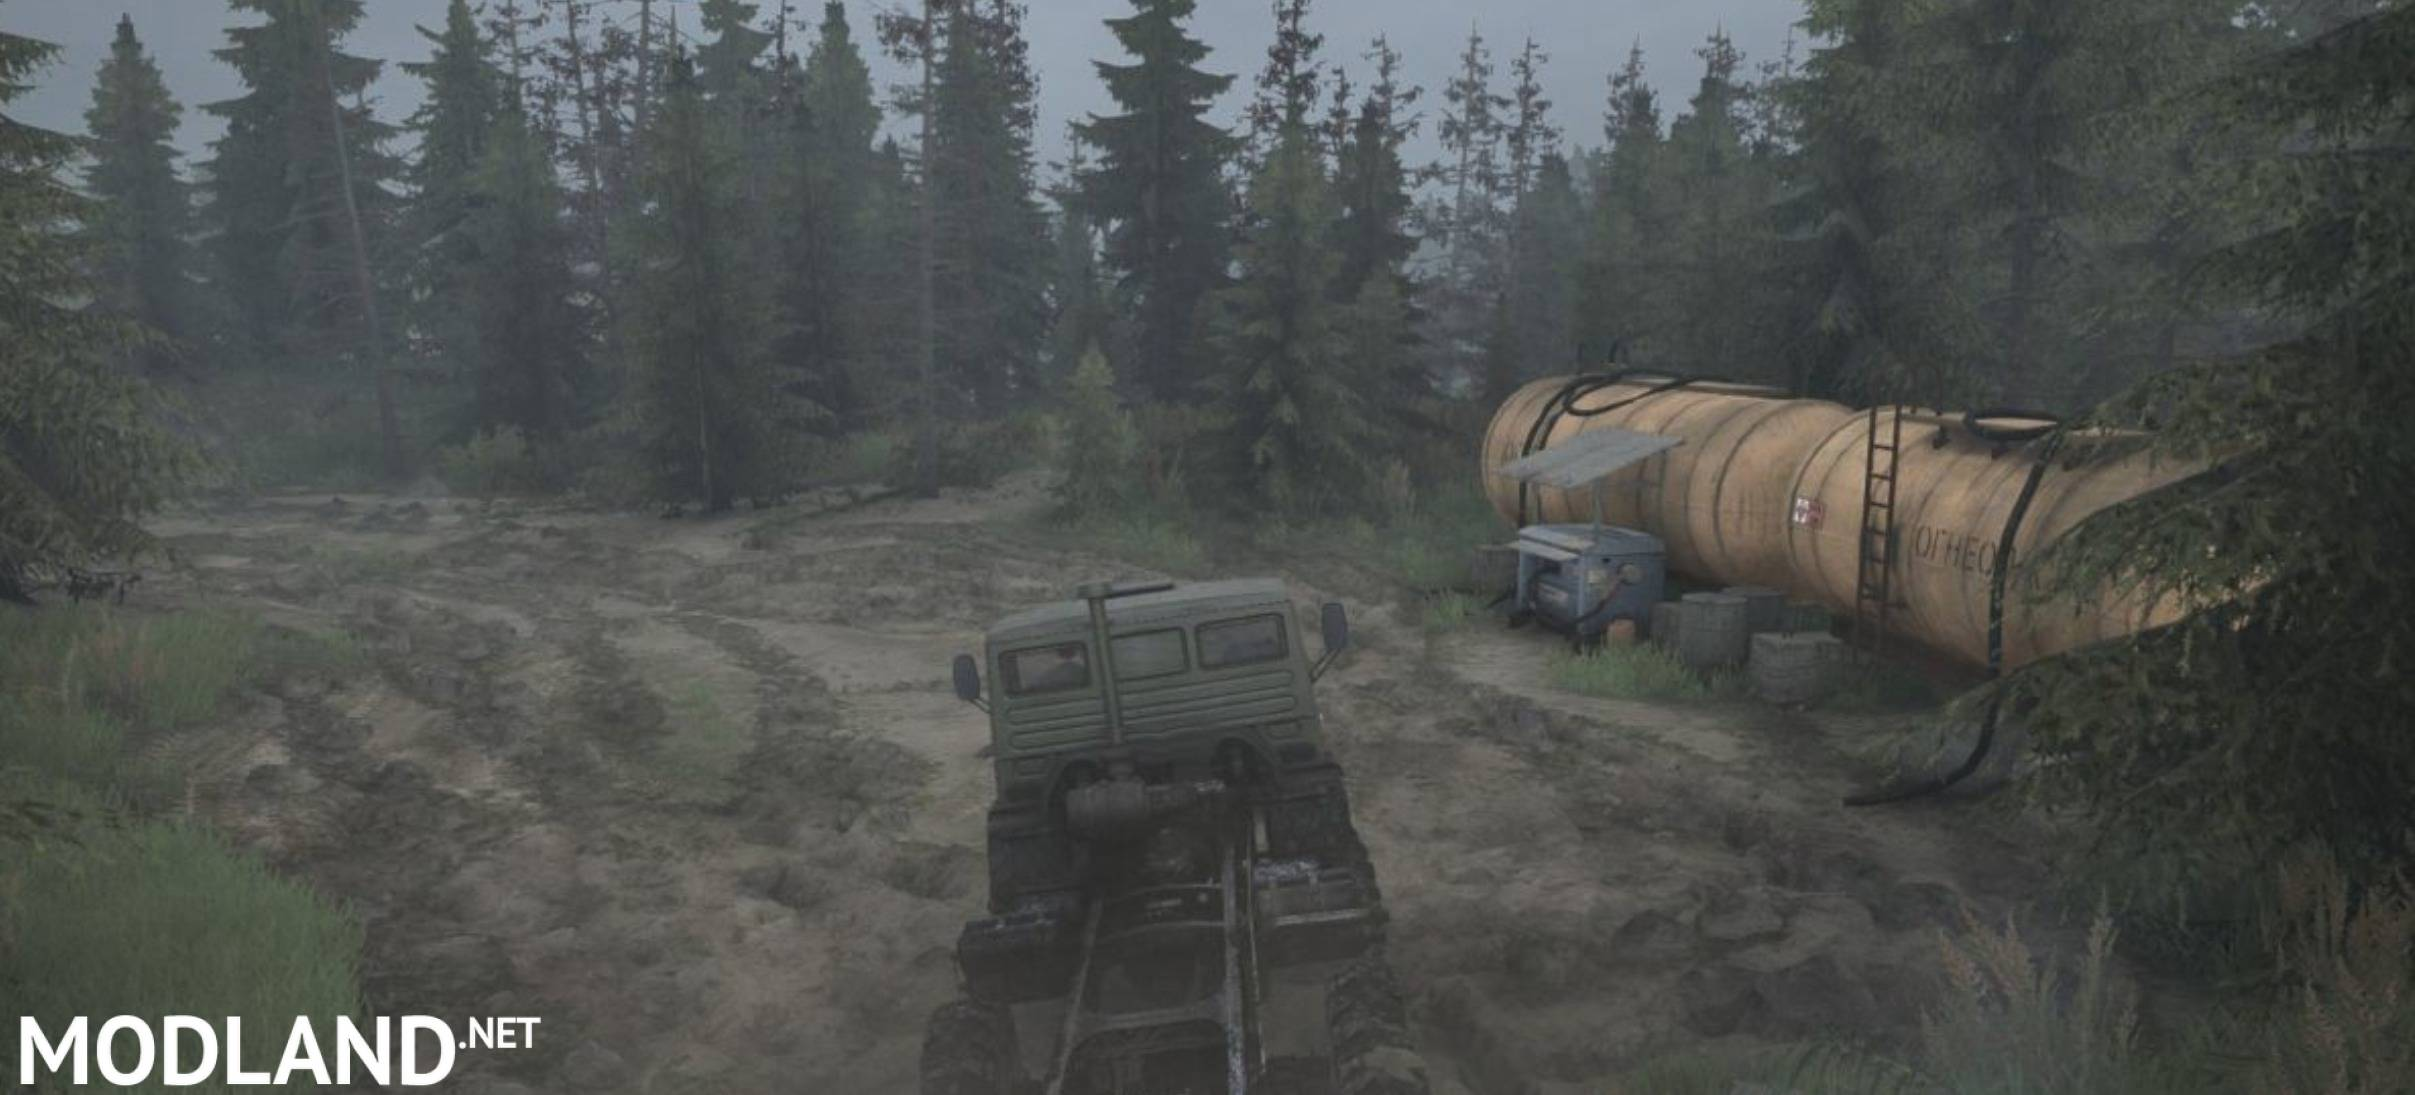 rio map zil with Lunino Map V1 0 Spintires Mudrunner on Wald International Rolls Royce Phantom Coupe likewise Abbey Gt 25326281 also Braz as well T 40 For Spintires Mudrunner together with Lunino Map V1 0 Spintires Mudrunner.